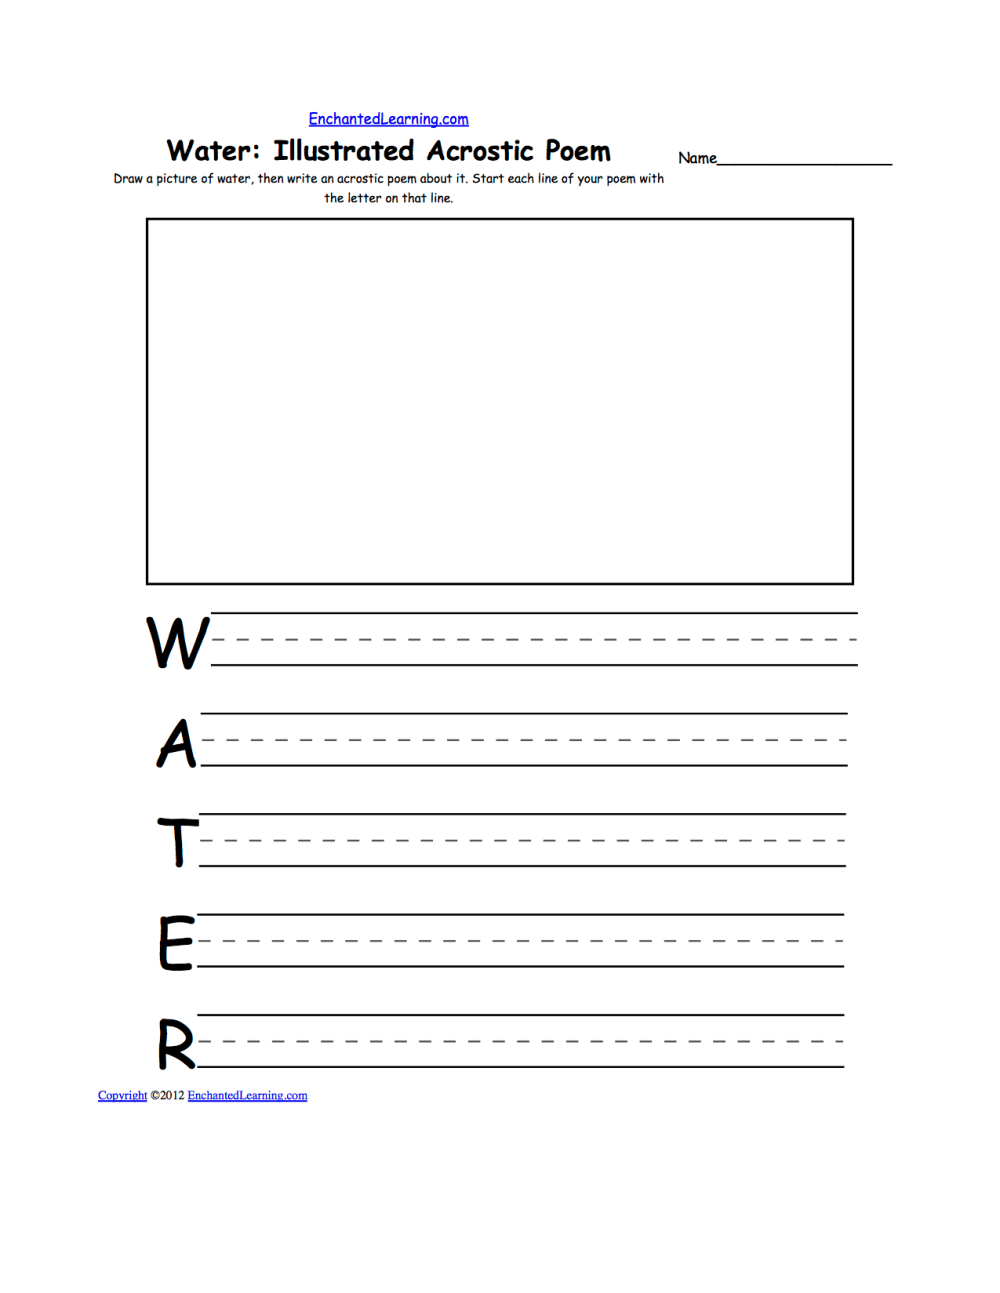 medium resolution of draw a picture of water then write an acrostic poem about it start each line of your poem with the letter on that line